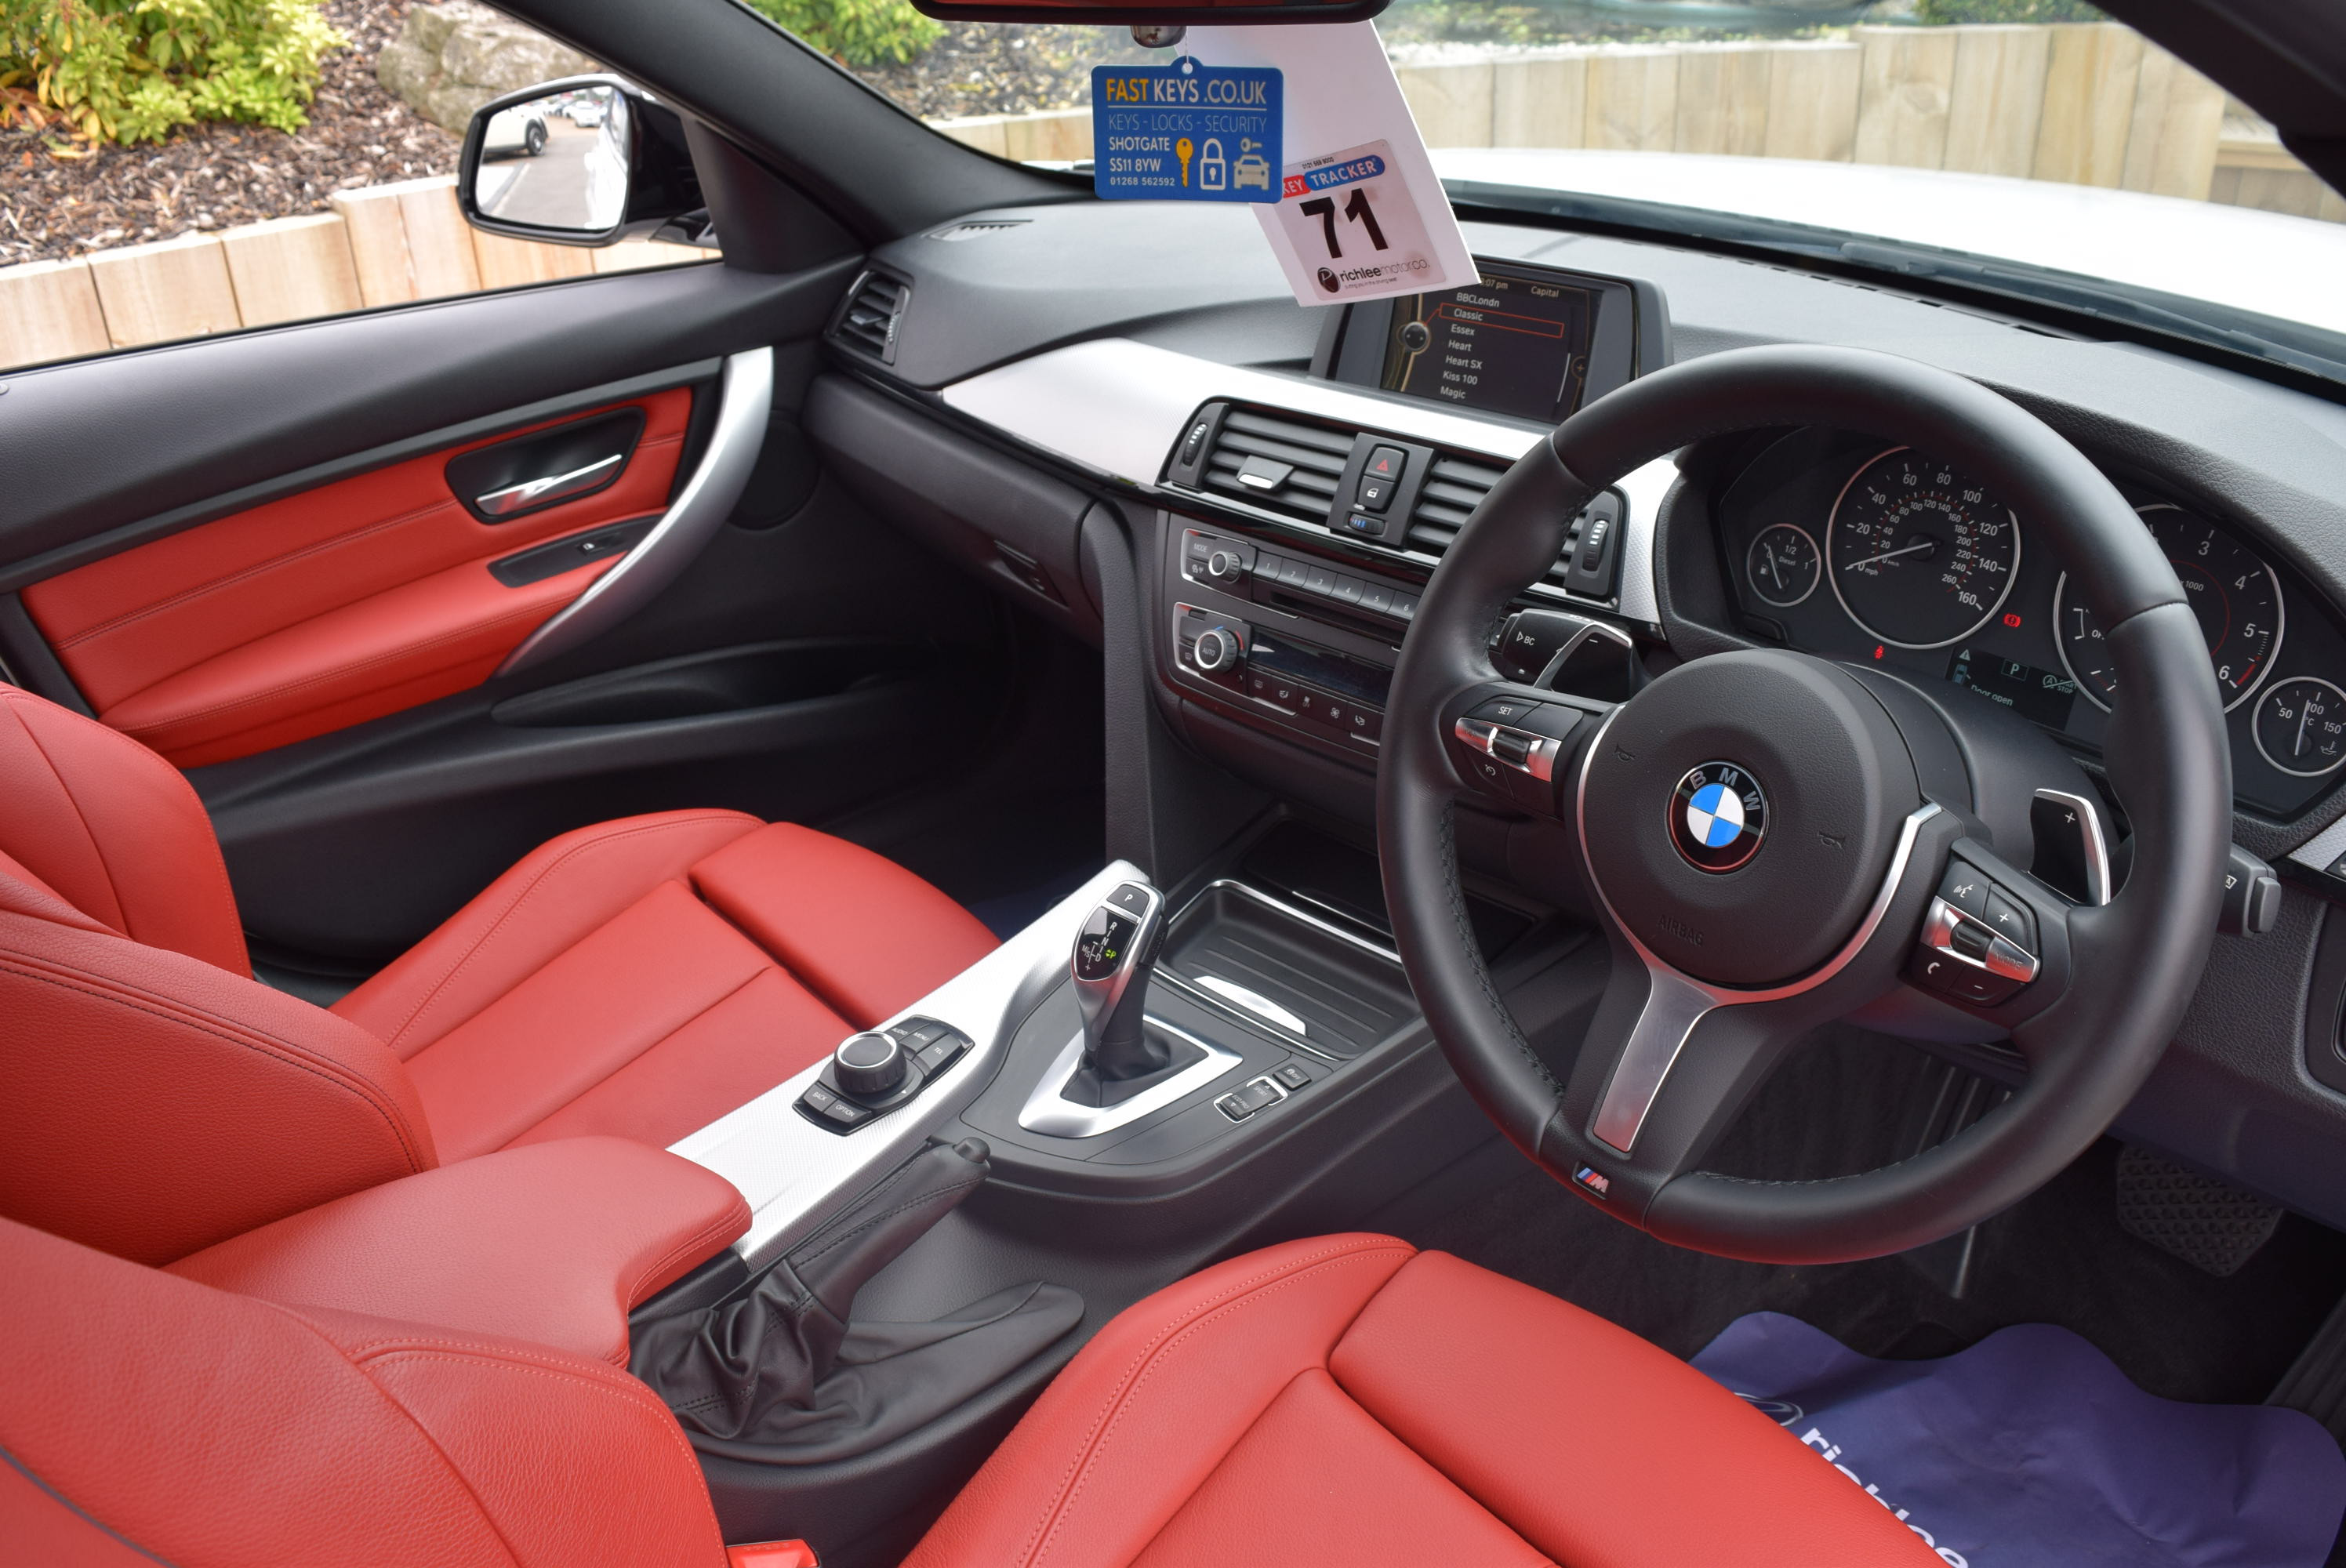 Red Interior Cars for Sale Near Me New Red Interior Cars for Sale Near Me Inspirational 50 Bmw Red Interior